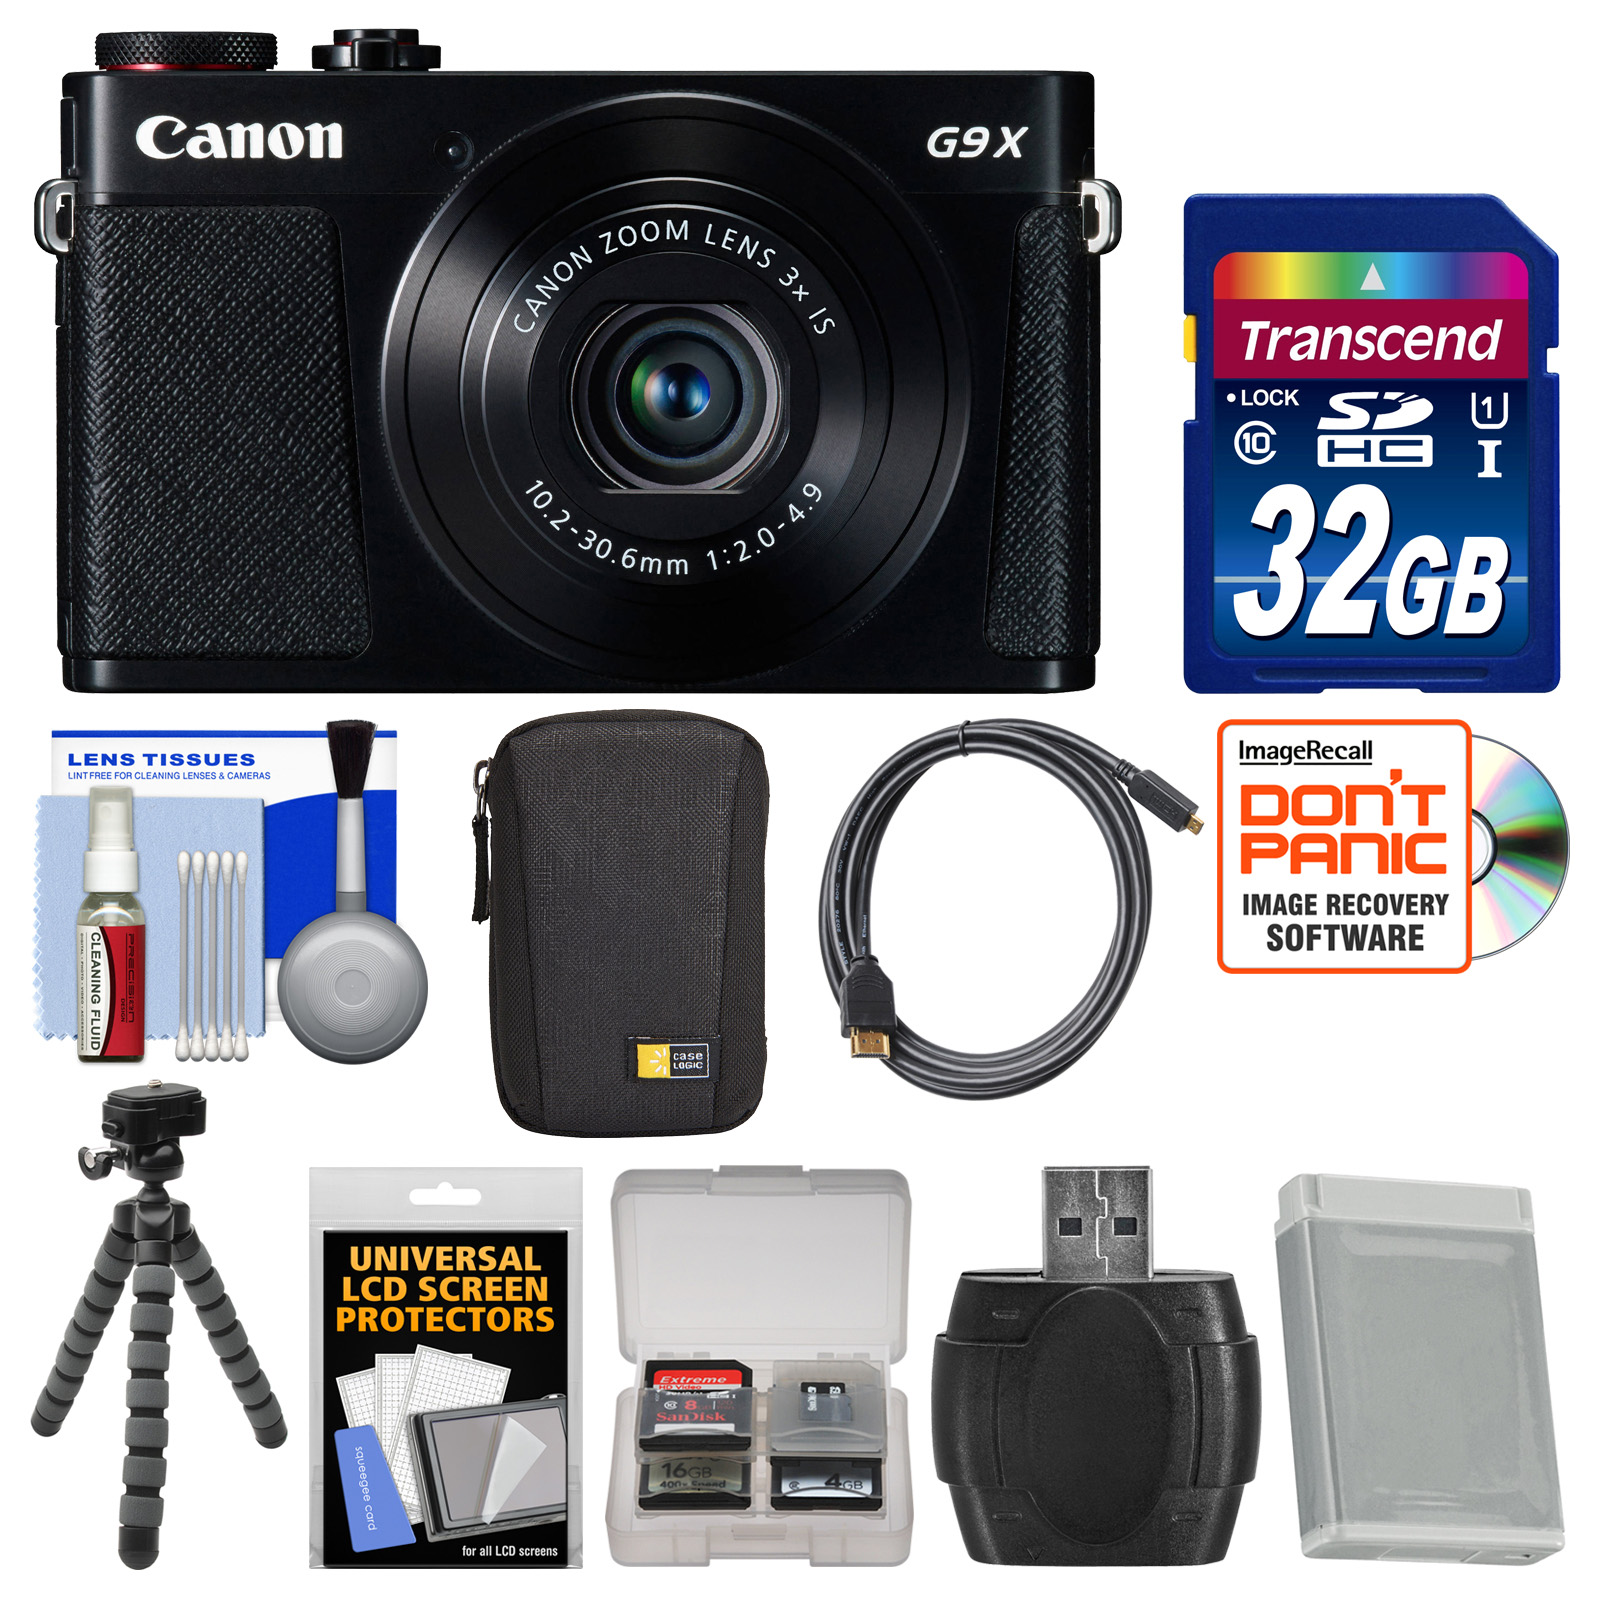 Canon PowerShot G9 X Wi-Fi Digital Camera (Black) with 32GB Card + Case + Battery + Flex Tripod + Kit